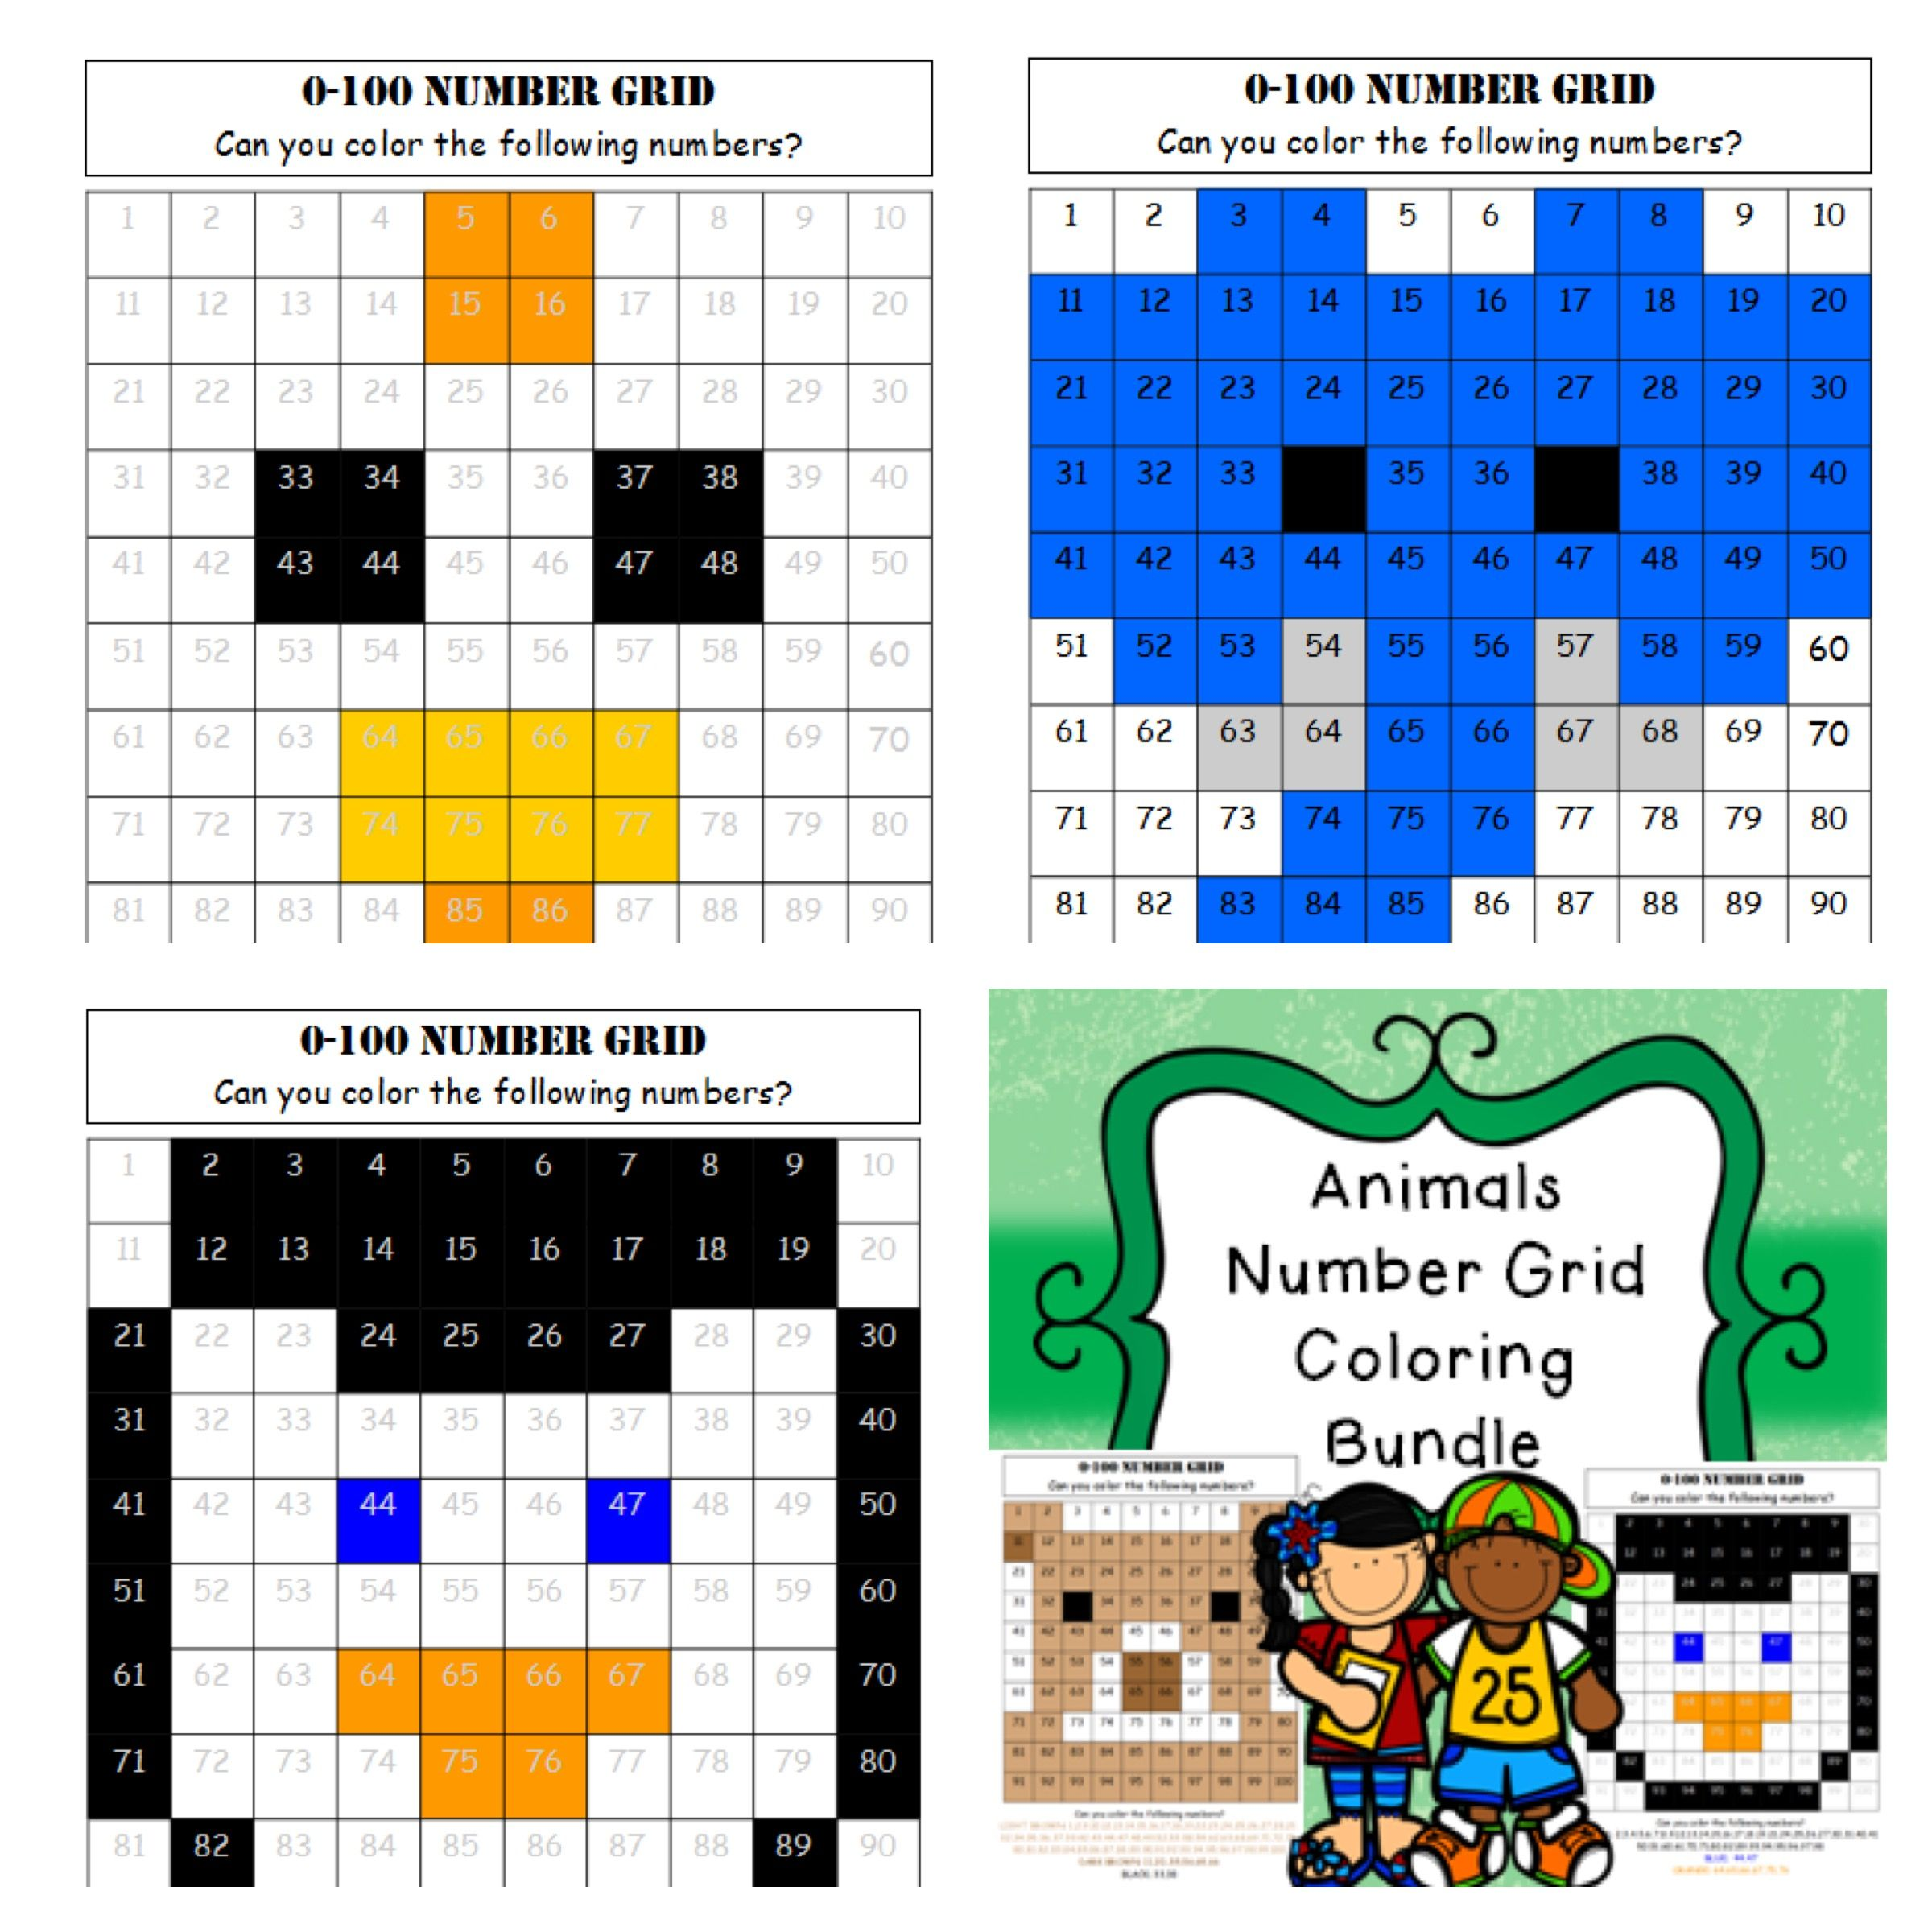 Free grid coloring worksheets - Number Grid Coloring By Number Animals This Product Contains 11